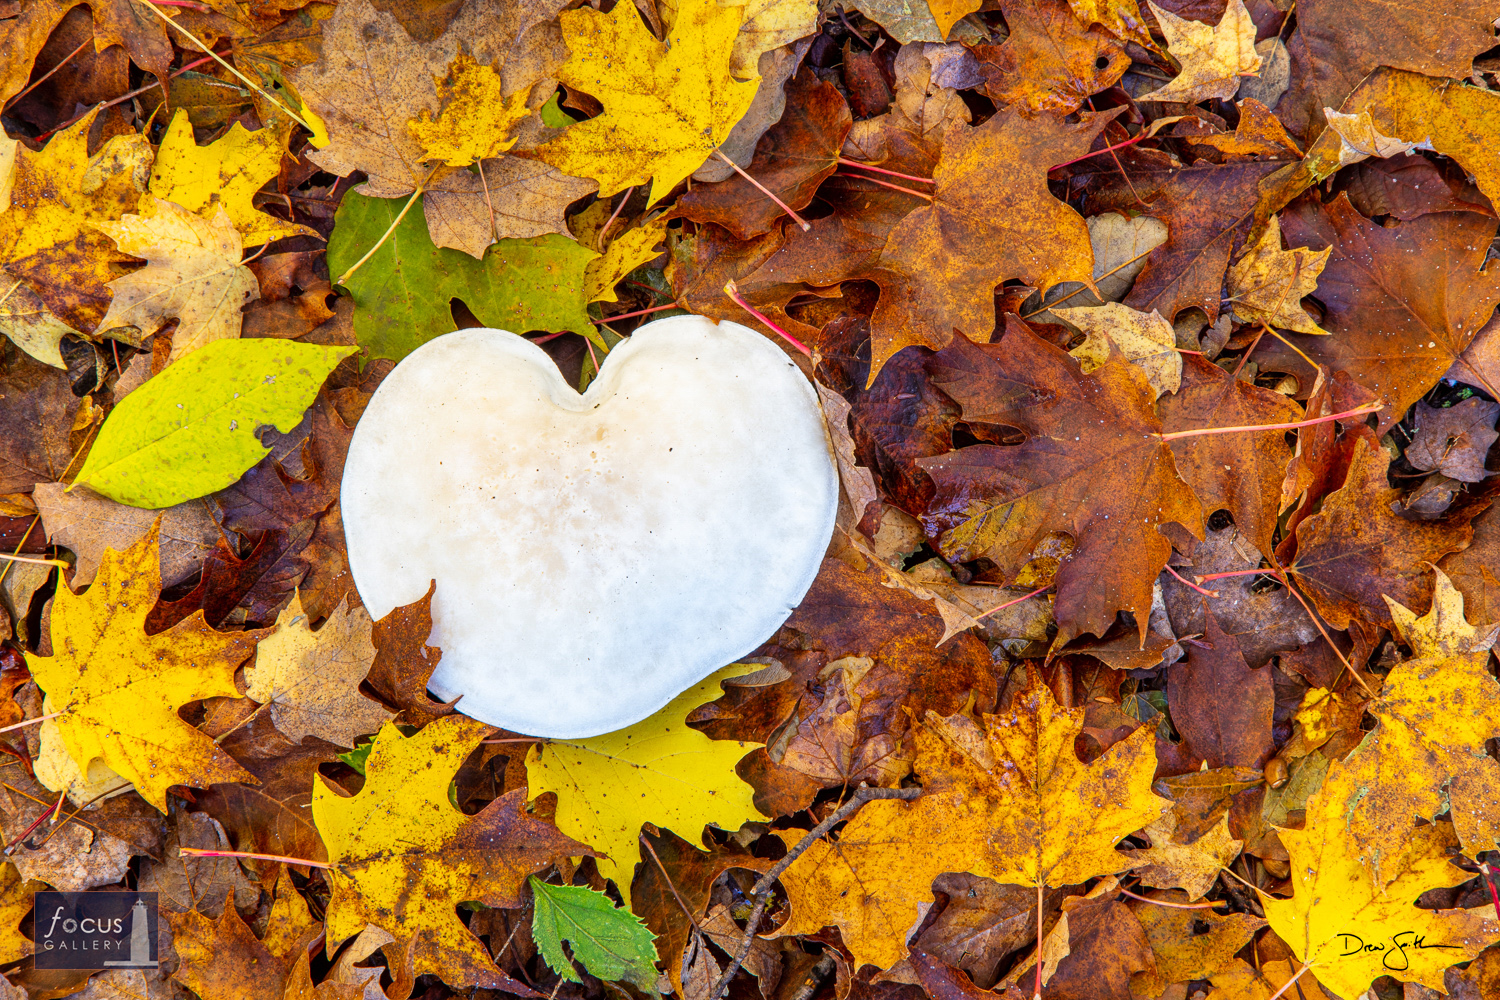 Photo © Drew Smith A heart-shaped mushroom surrounded by beautiful fall leaves - Autumn Love! This image is also available in...